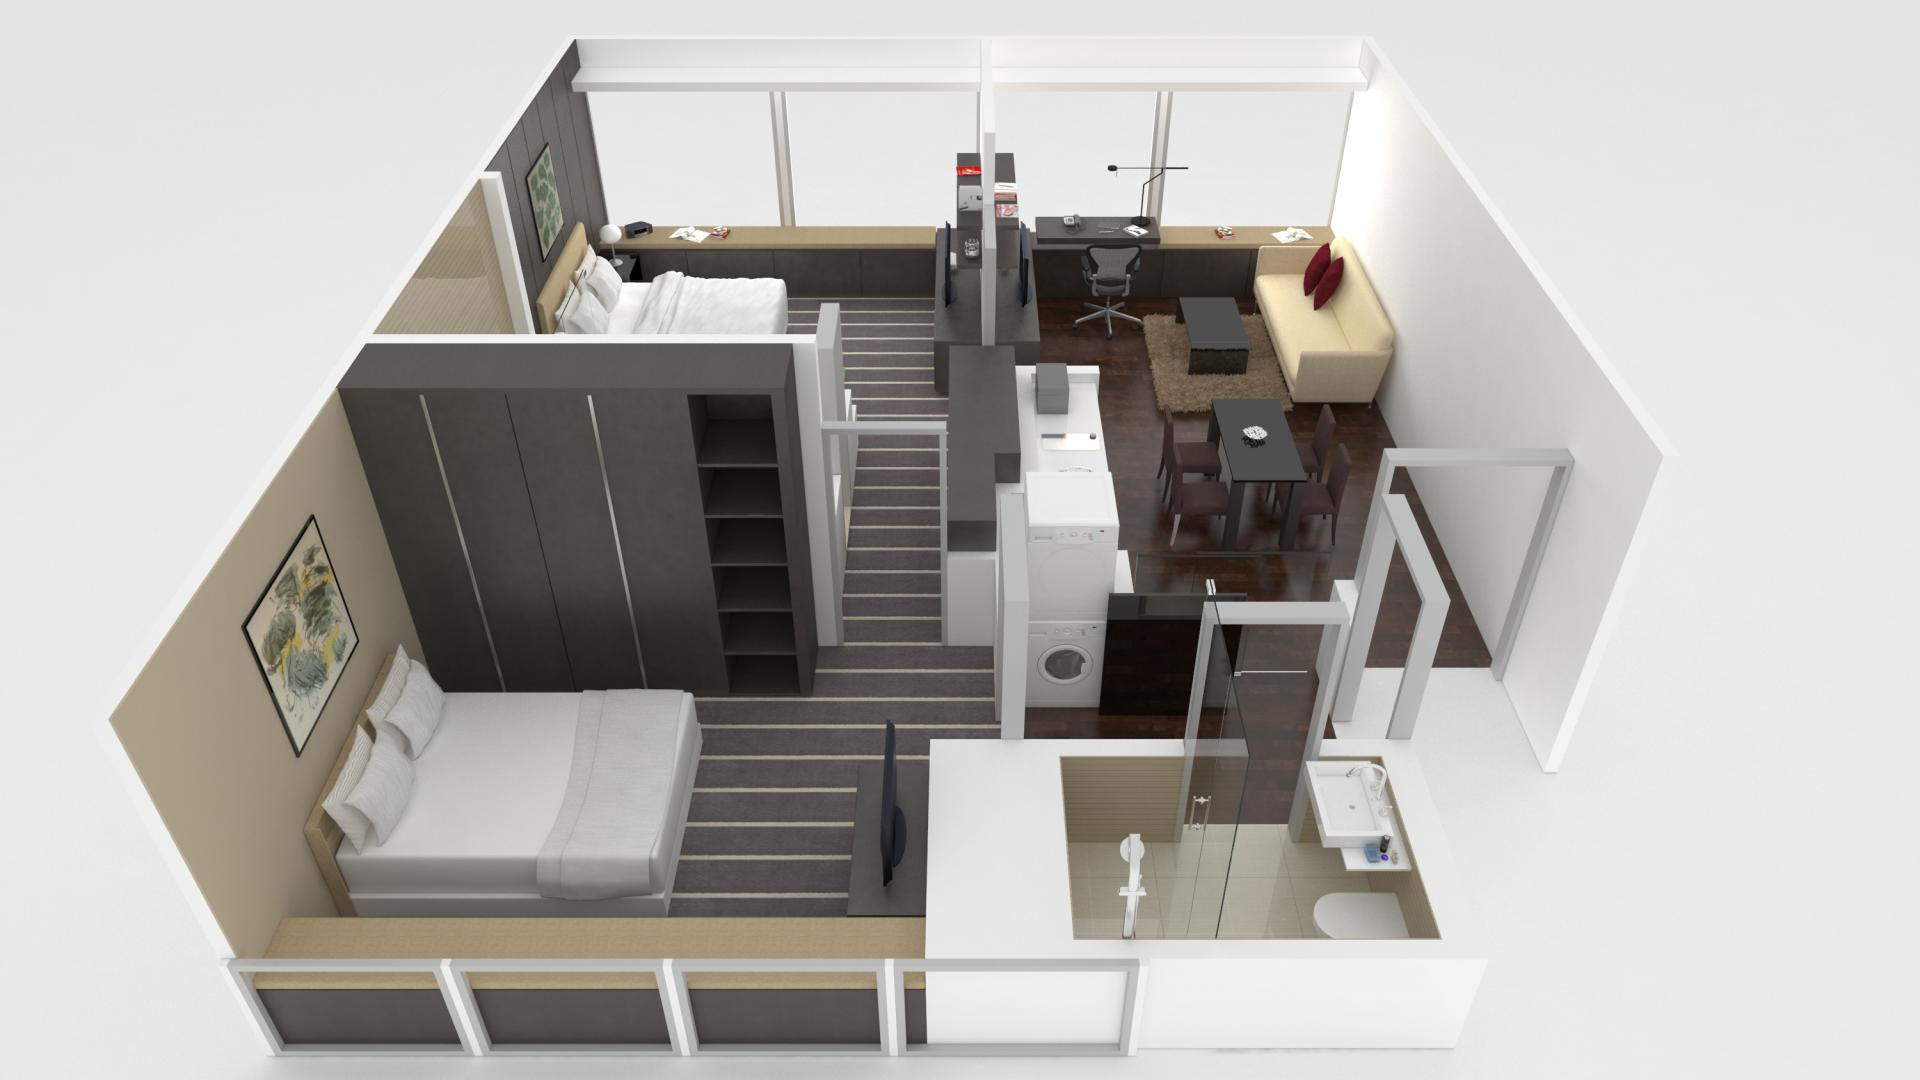 2 bed floor plan at Pan Pacific Serviced Suites Orchard